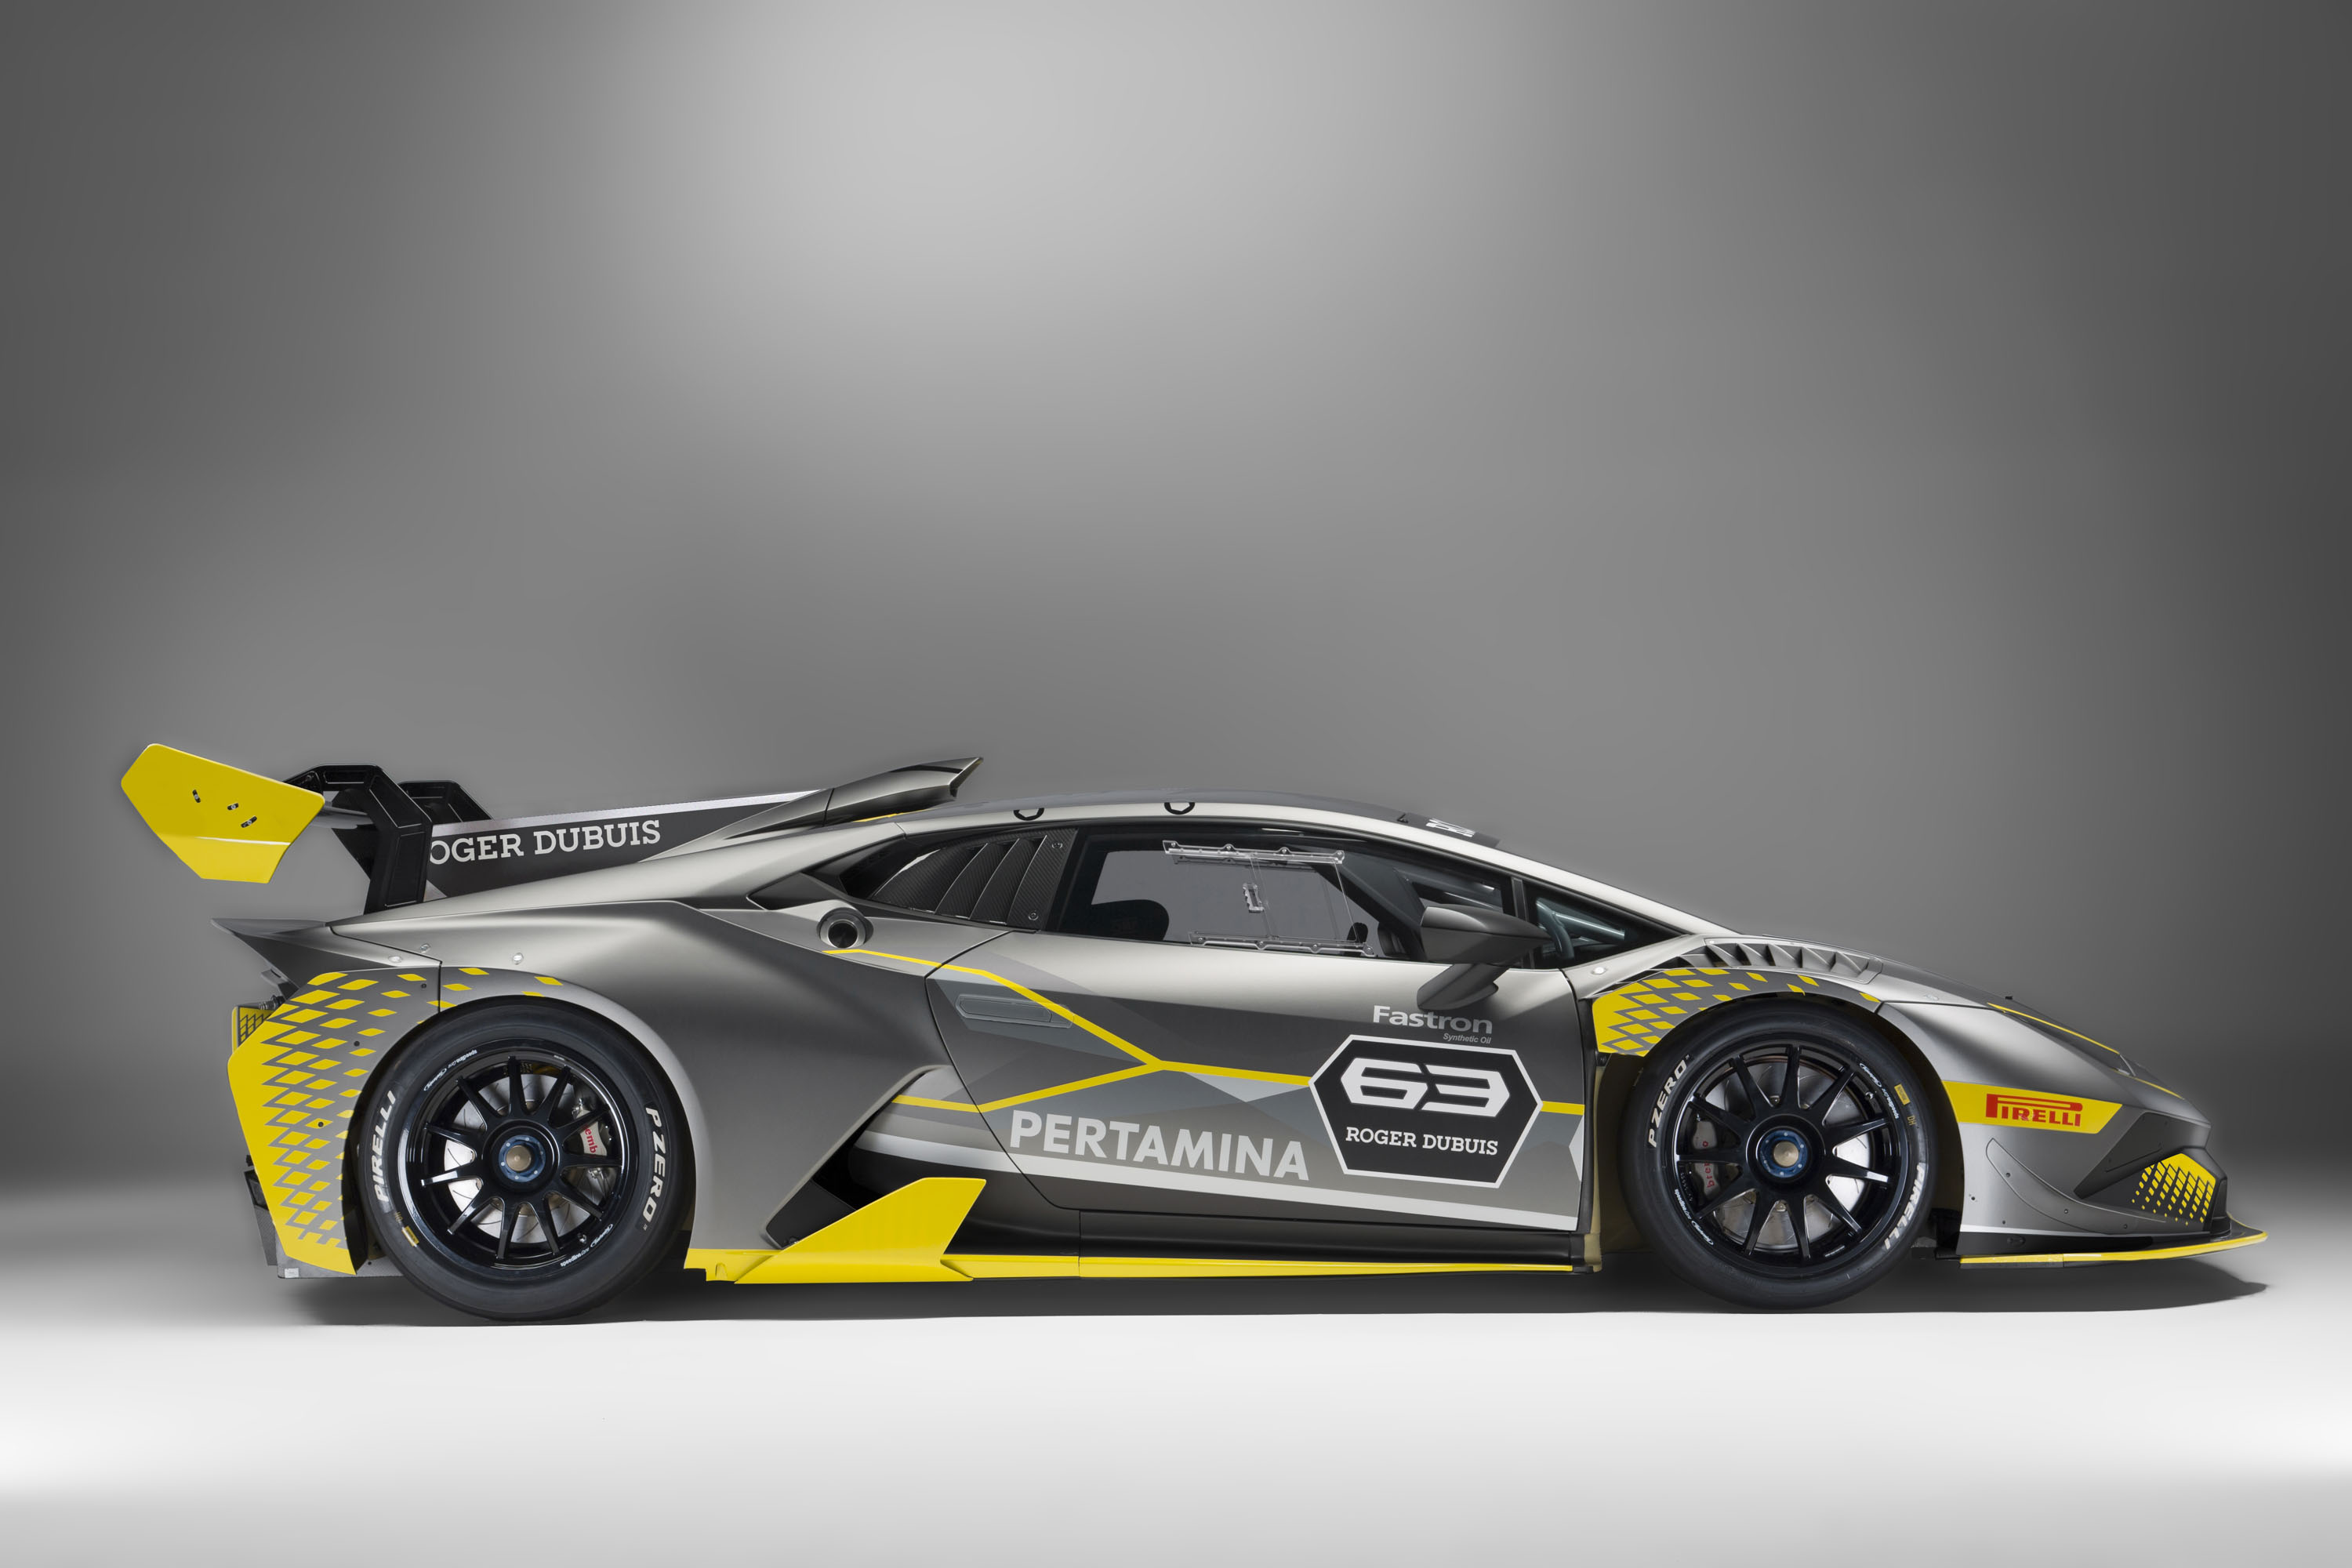 2018 Lamborghini Huracan Super Trofeo Evo Review   Top Speed. »